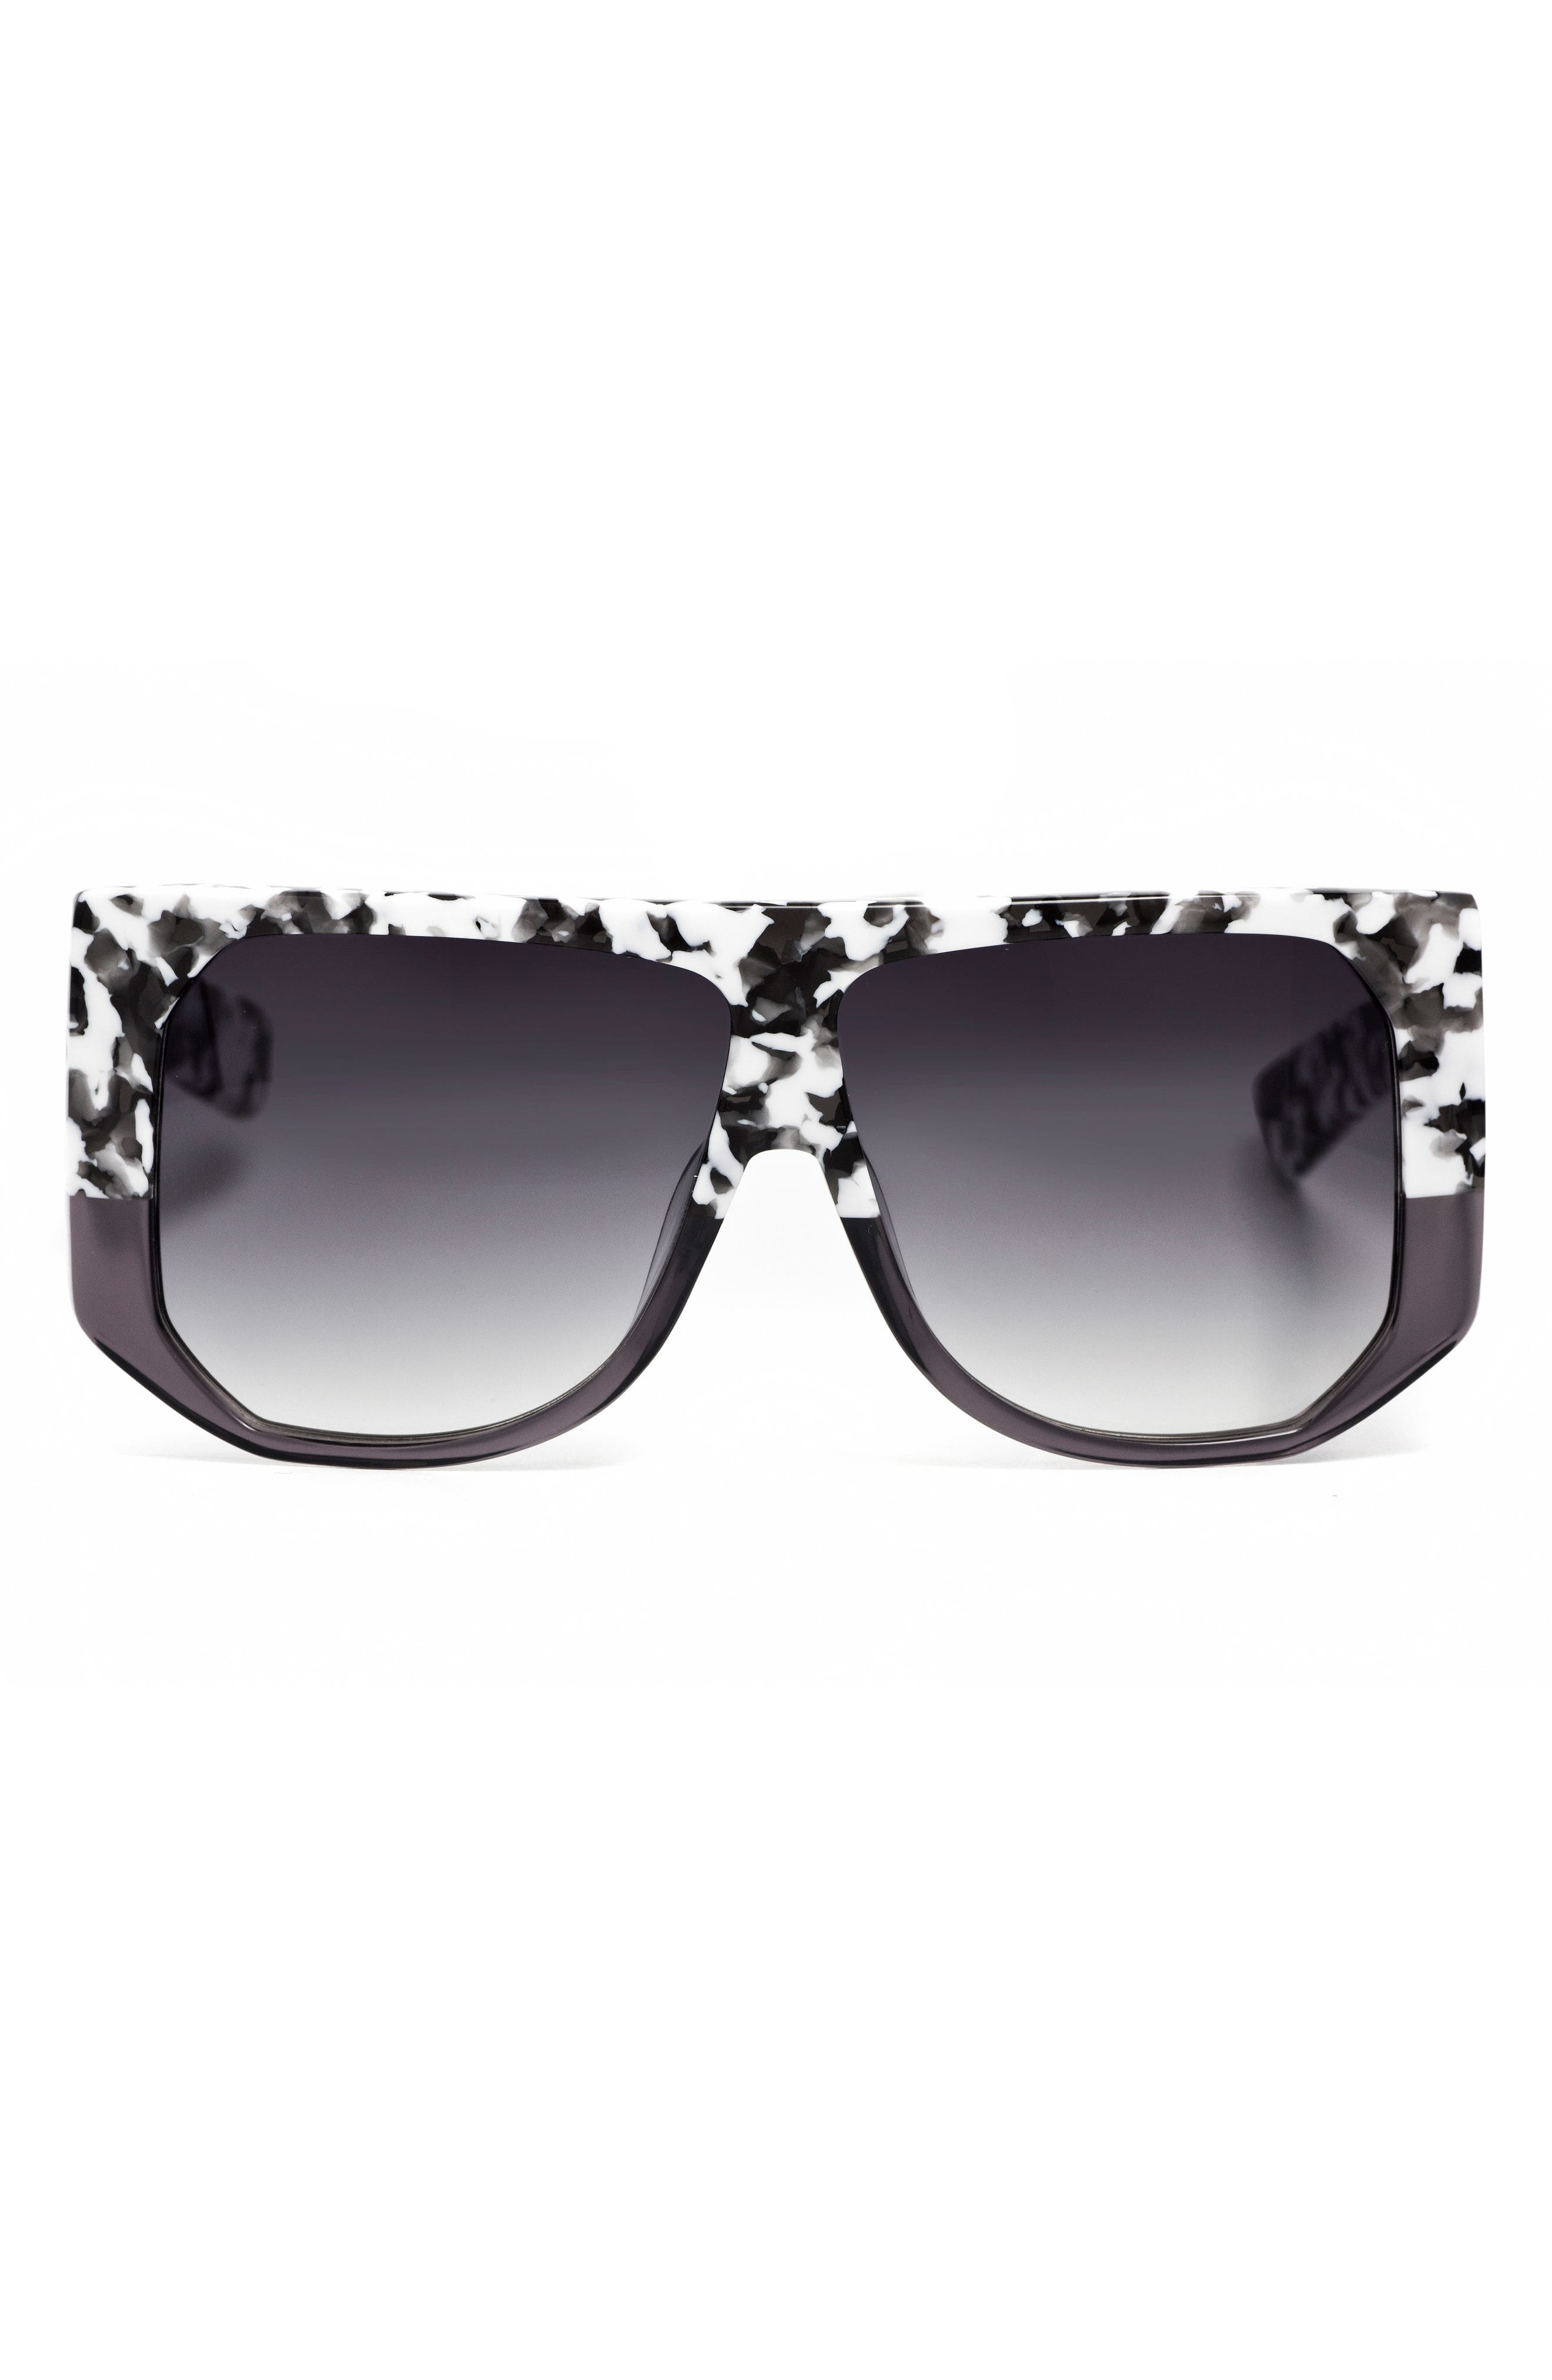 Frequent Flyer 58mm Sunglasses,                             Alternate thumbnail 3, color,                             WHITE CAMO